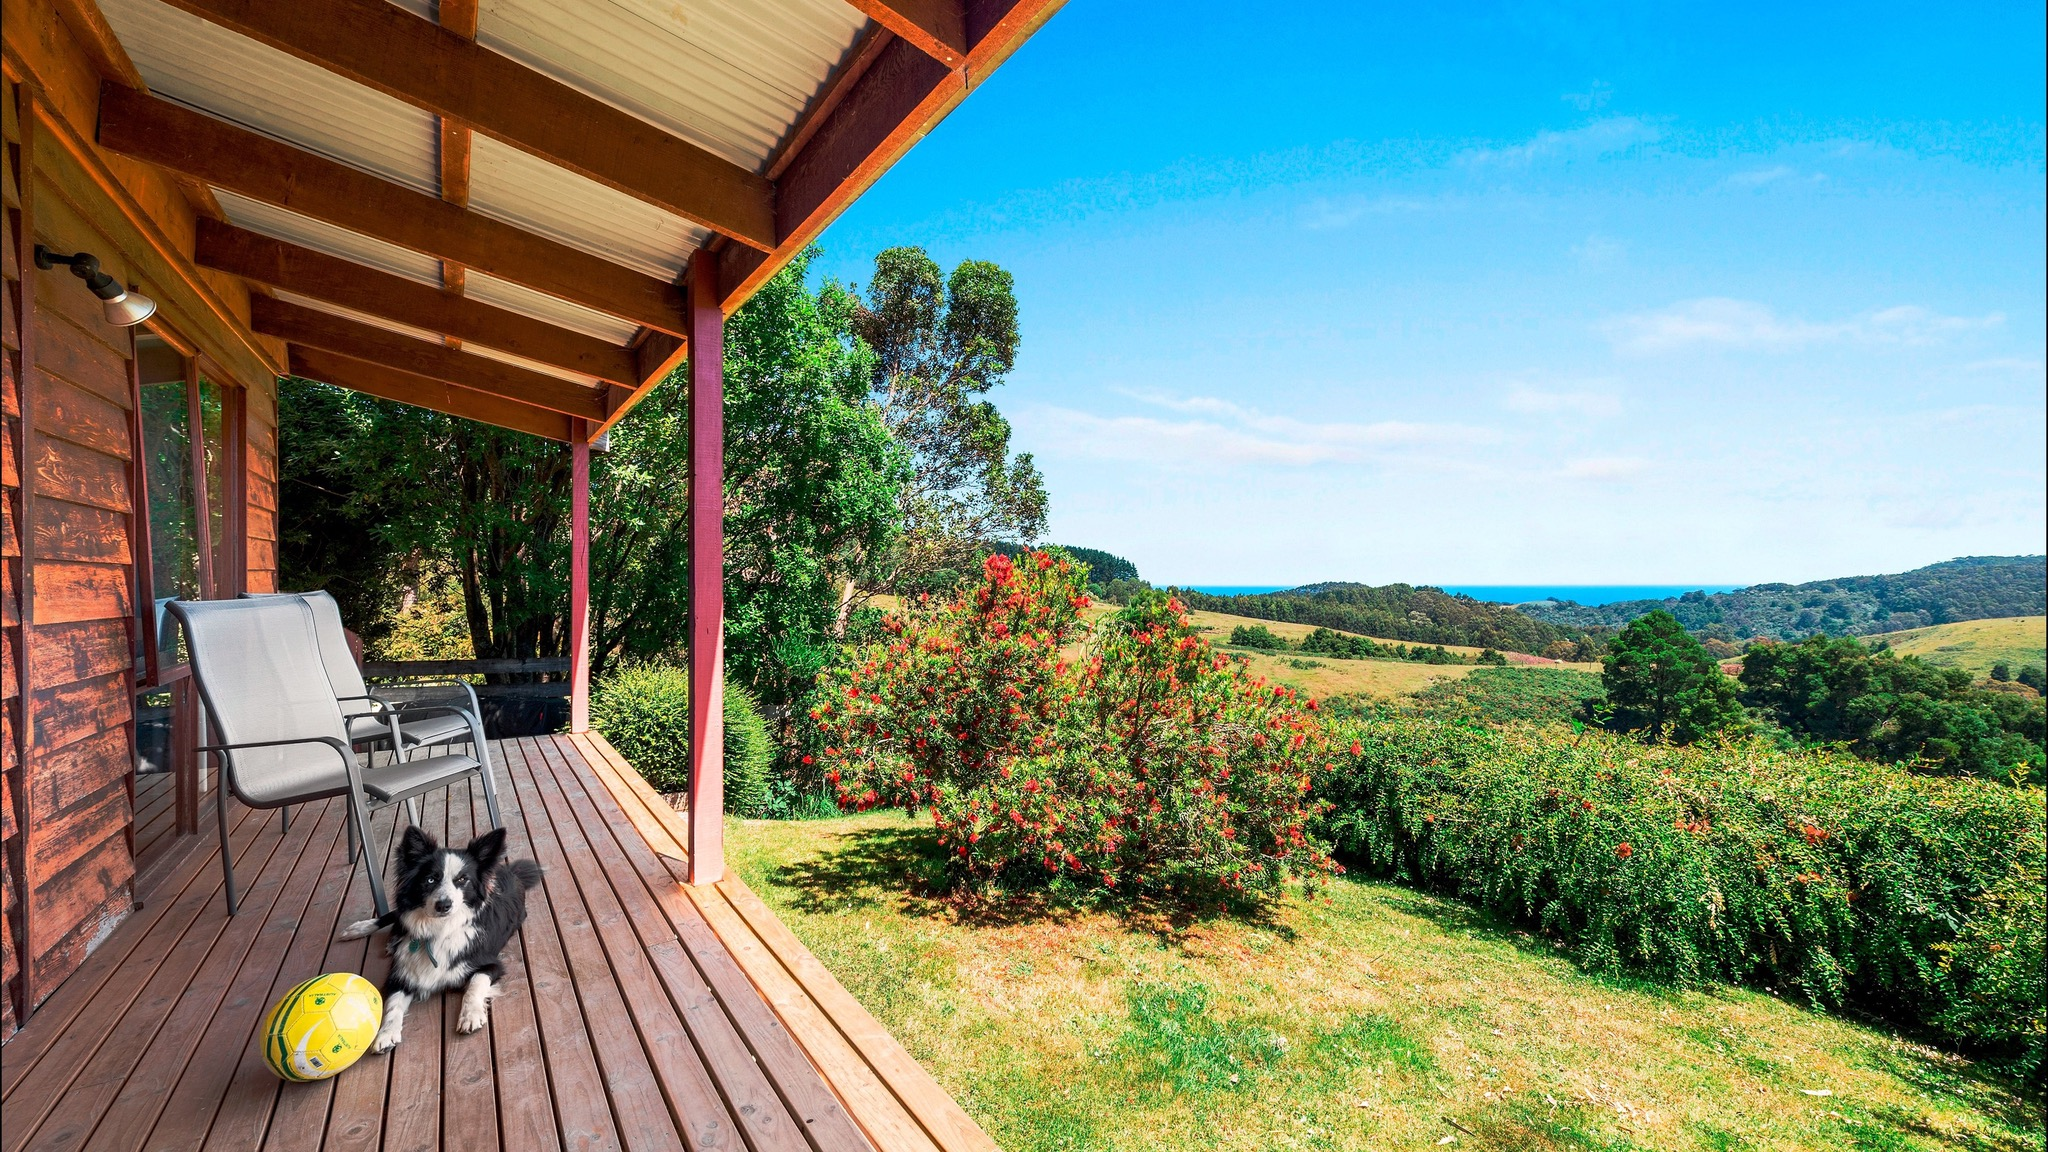 Johanna River Farm and Self Contained Cottages